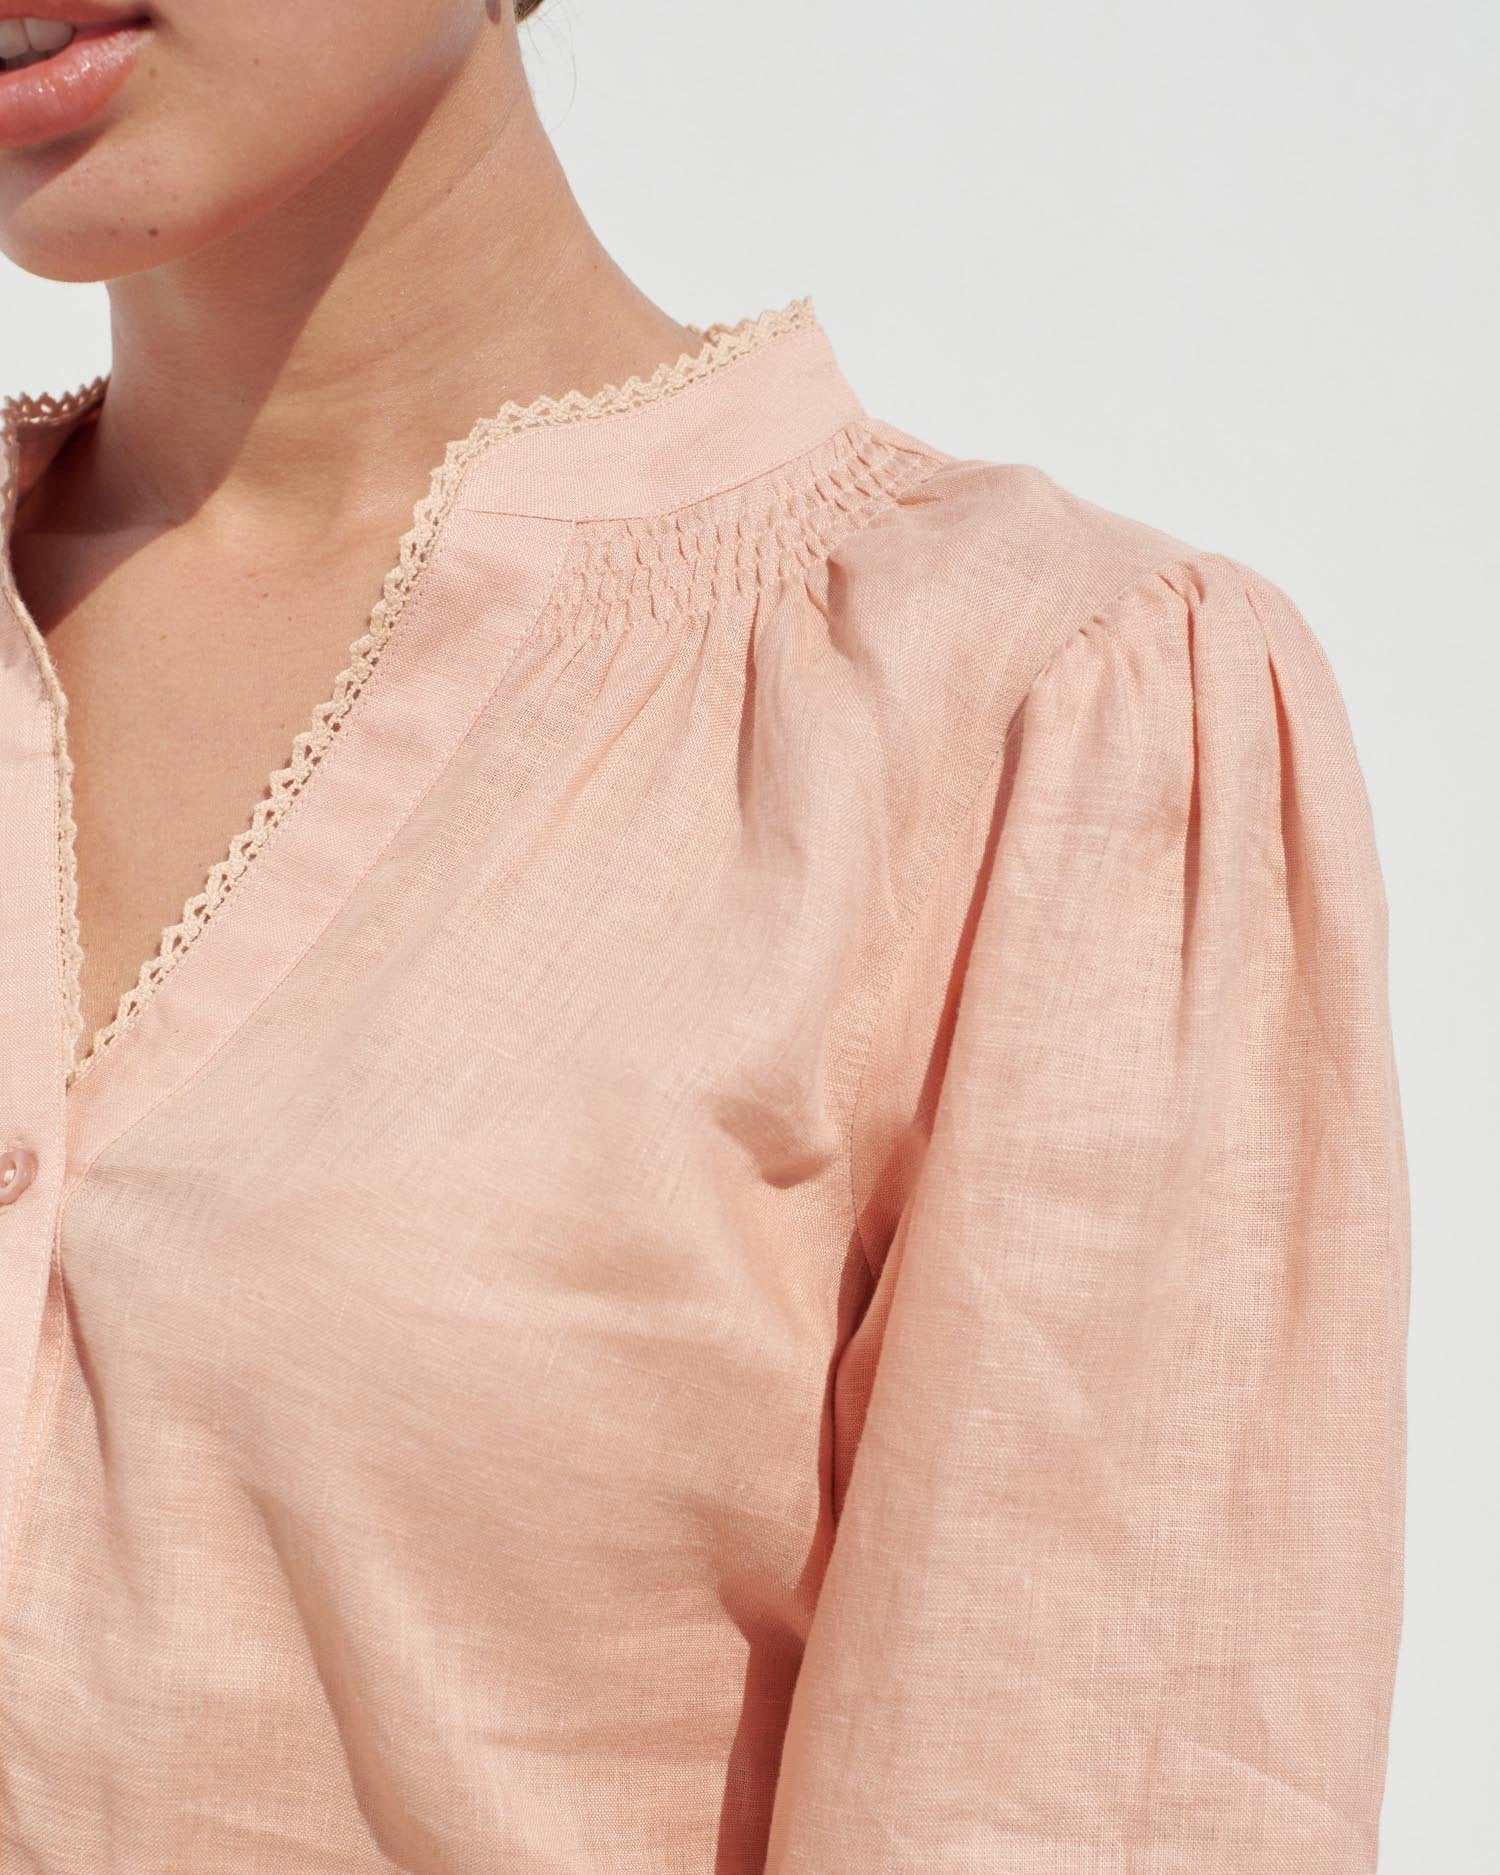 Color:Deep blush linen; Color: Deep blush linen